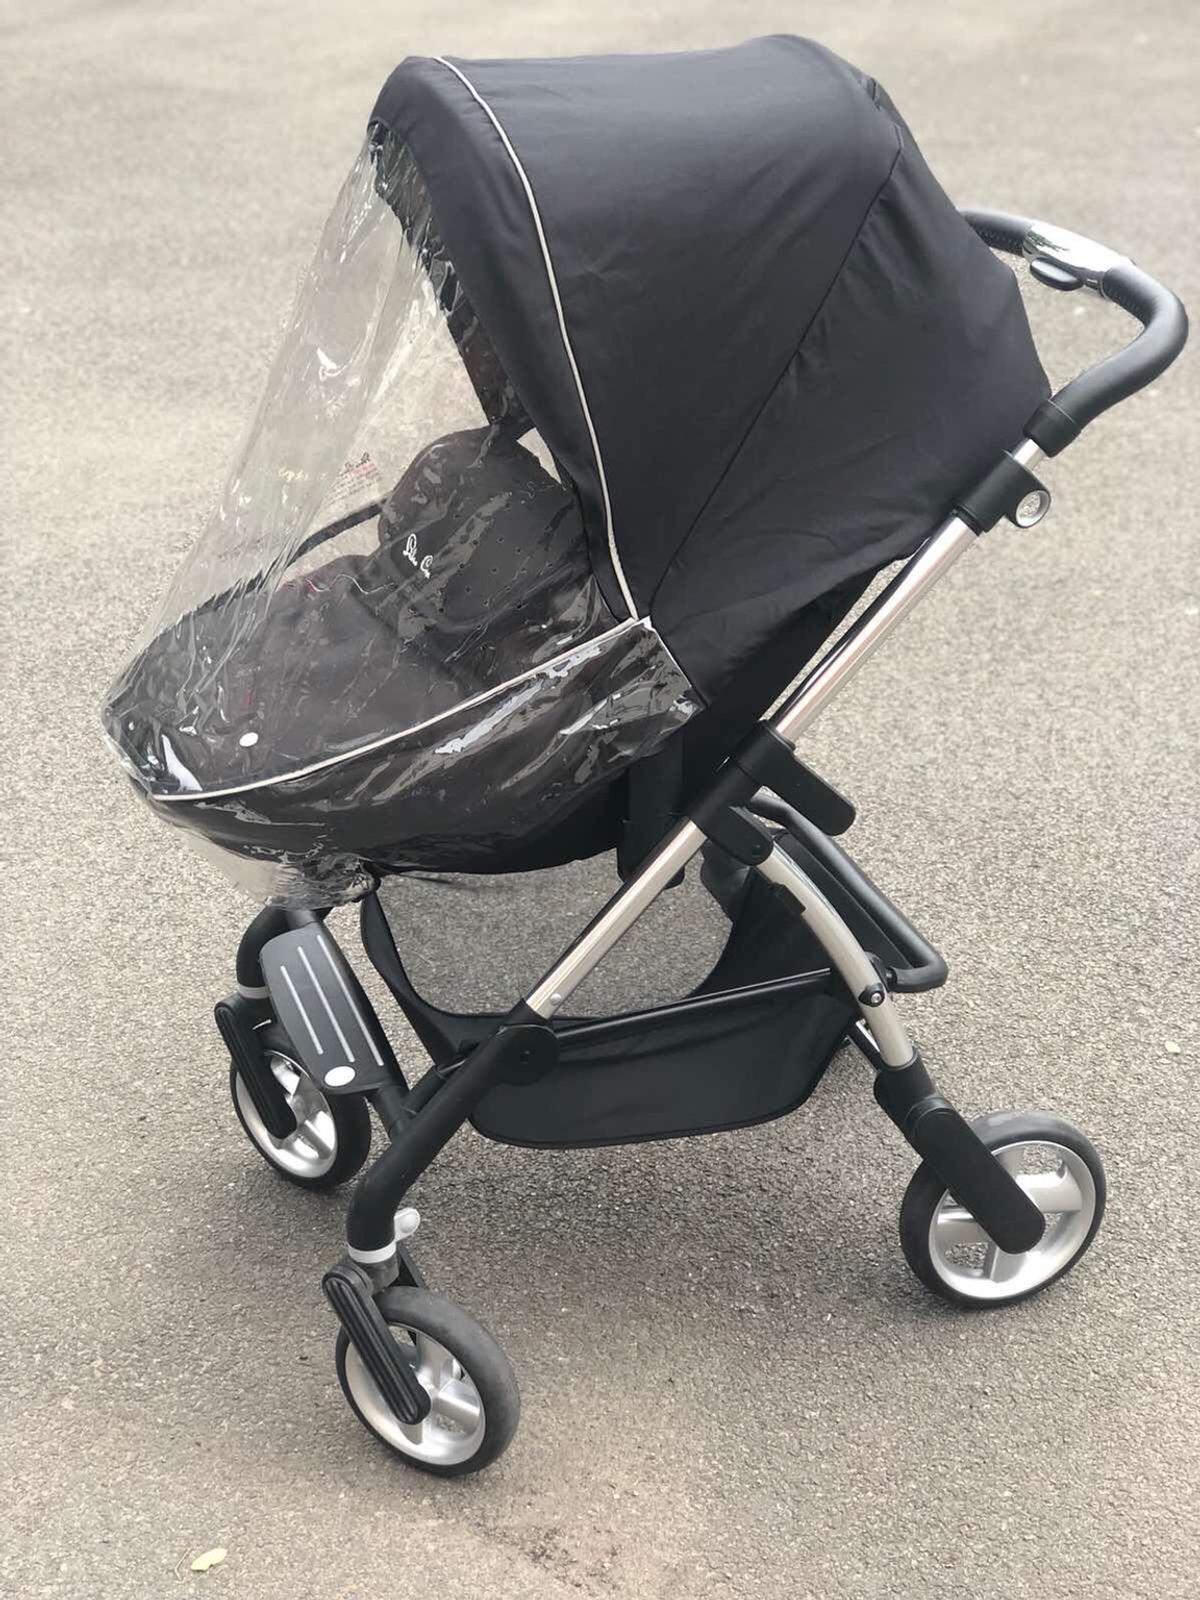 The Pram and carry cot with rain coat are available in a very good and sturdy condition, with only few scratches on the handle. The cot is very comfortable and clean.